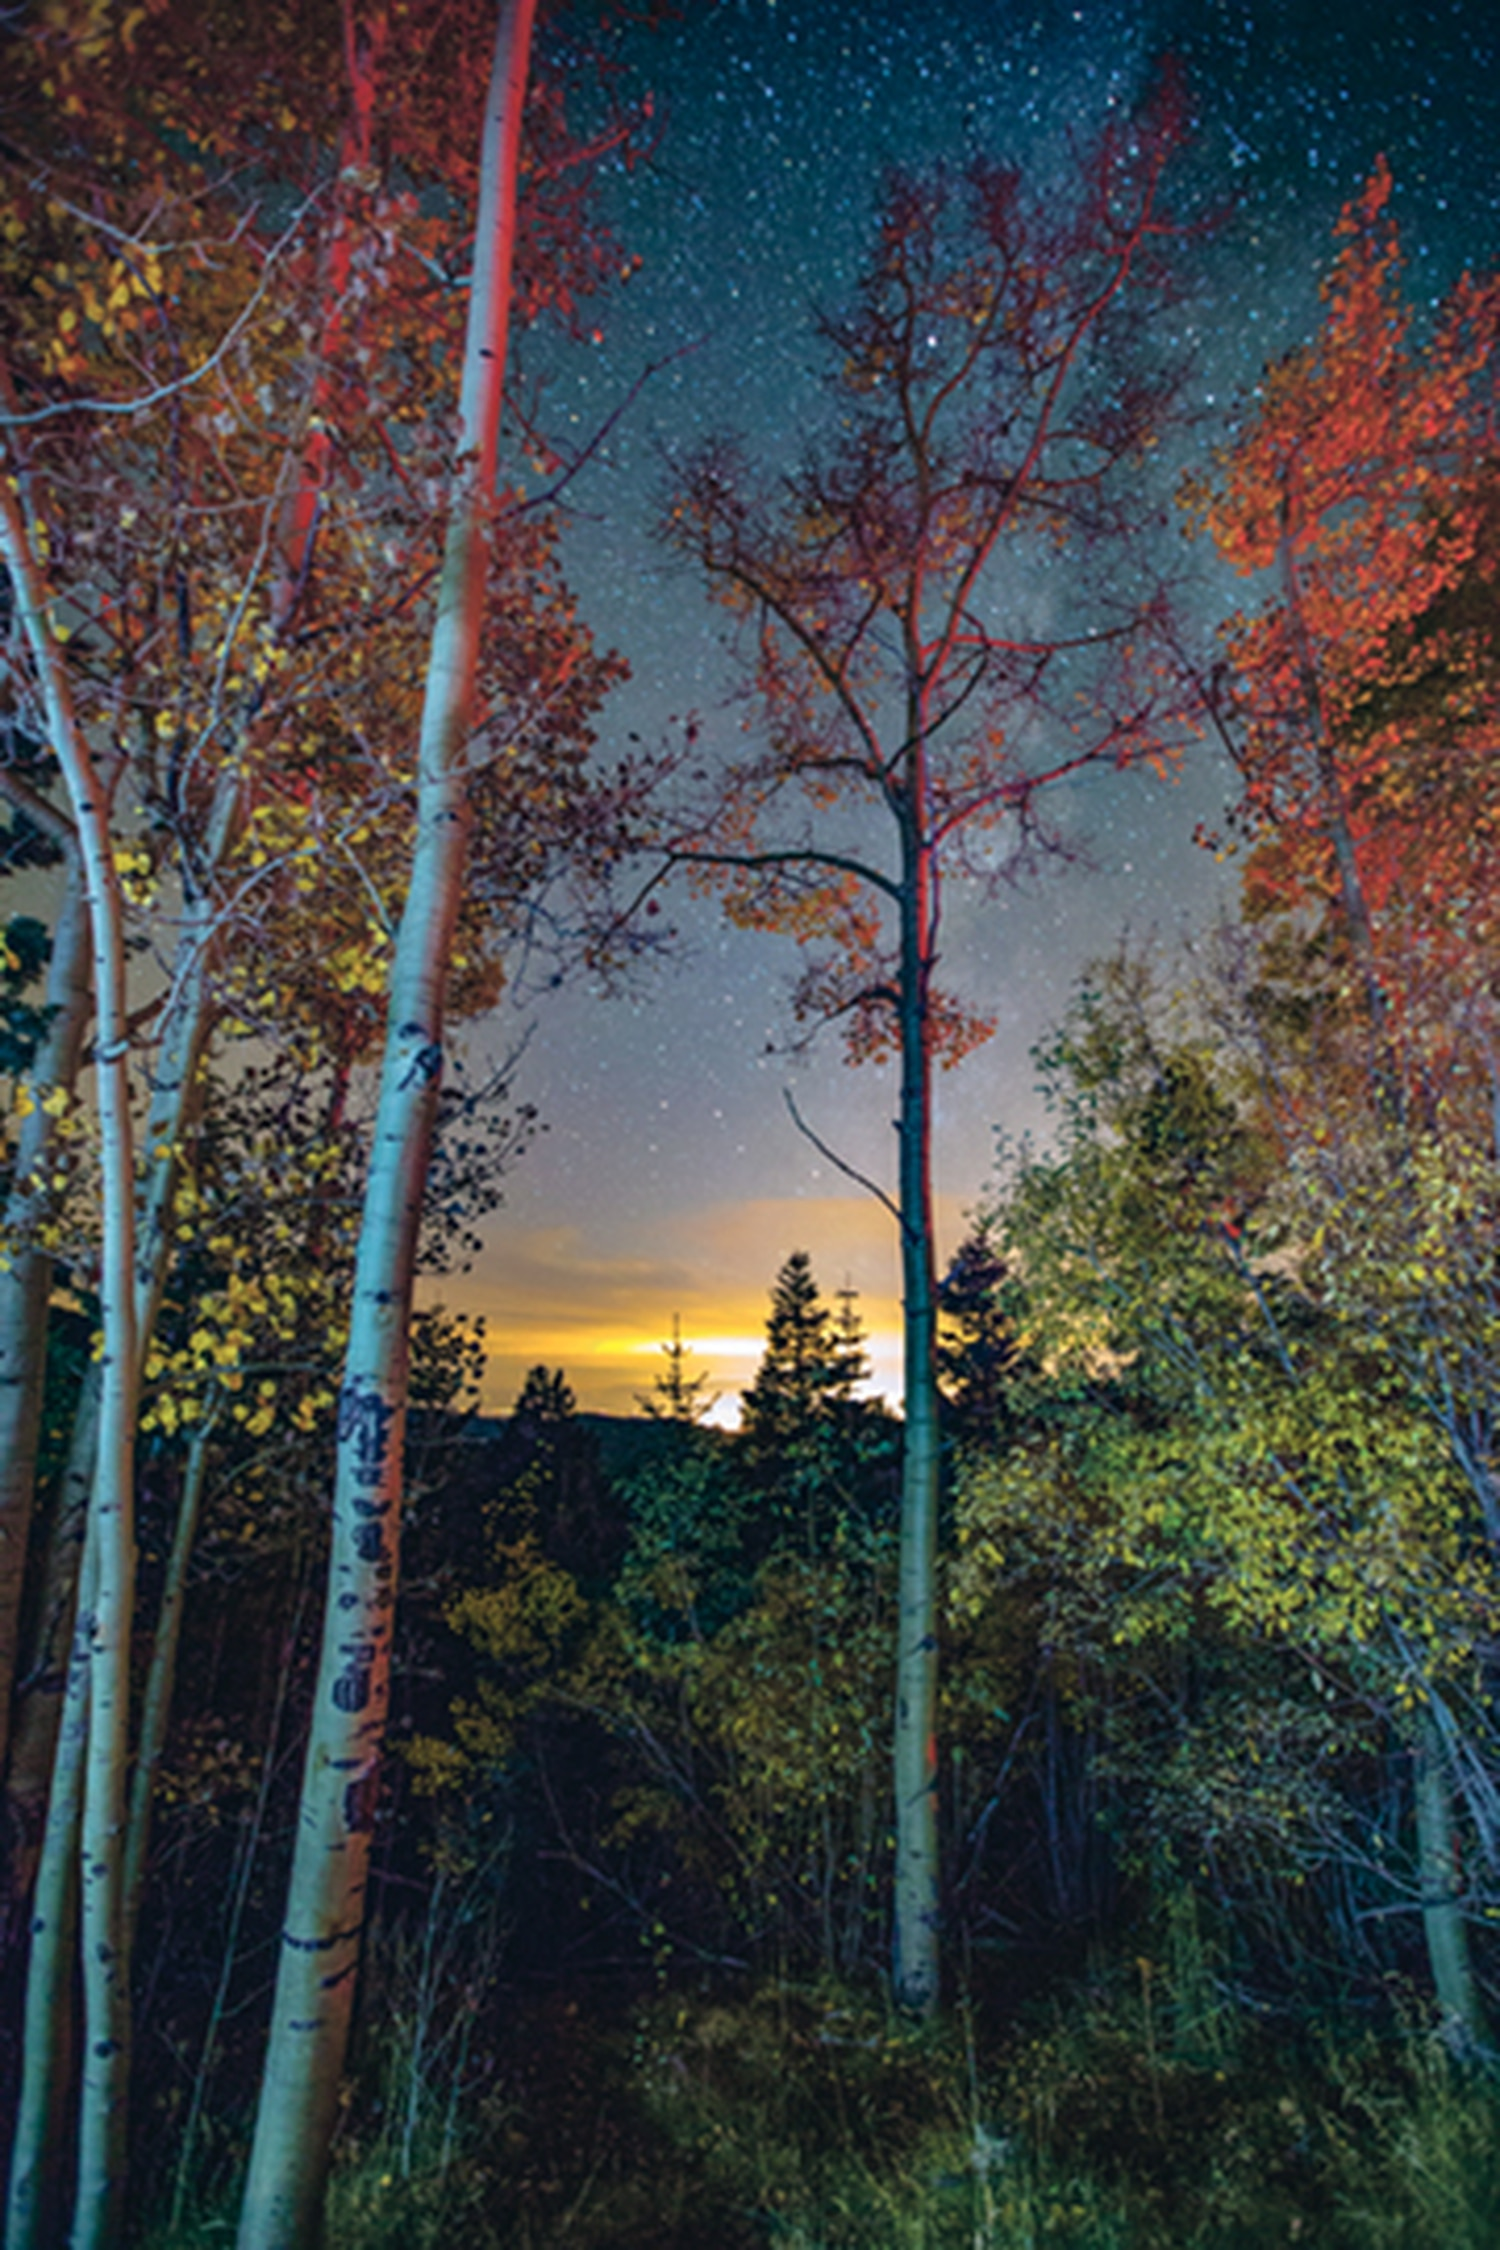 Aspen Vista at night, from one of our 2016 Annual Manual Photo Contest winners.